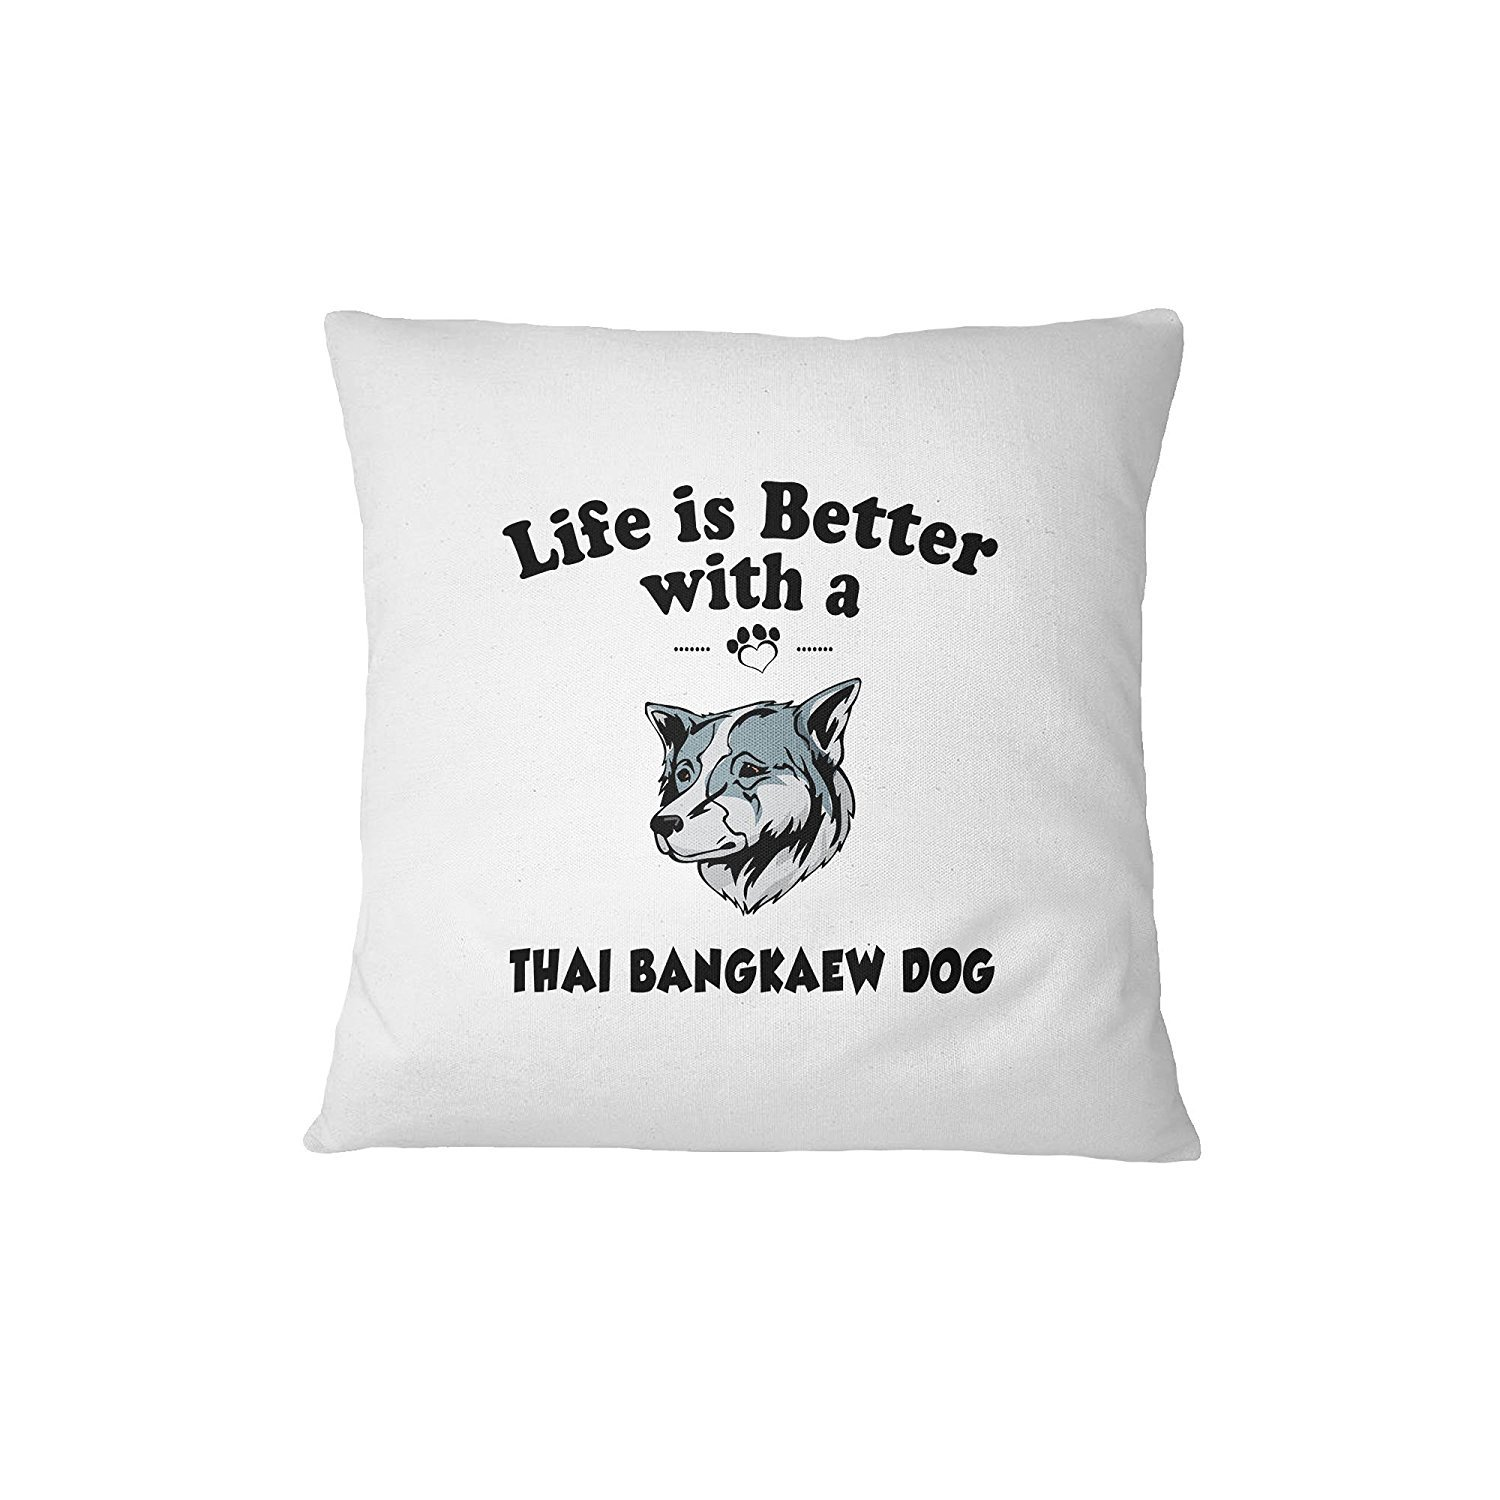 THAI BANGKAEW DOG Life is Better Sofa Bed Home Decor Pillow Cover Pillow & Cover Set ArtsLifes by ArtsLifes